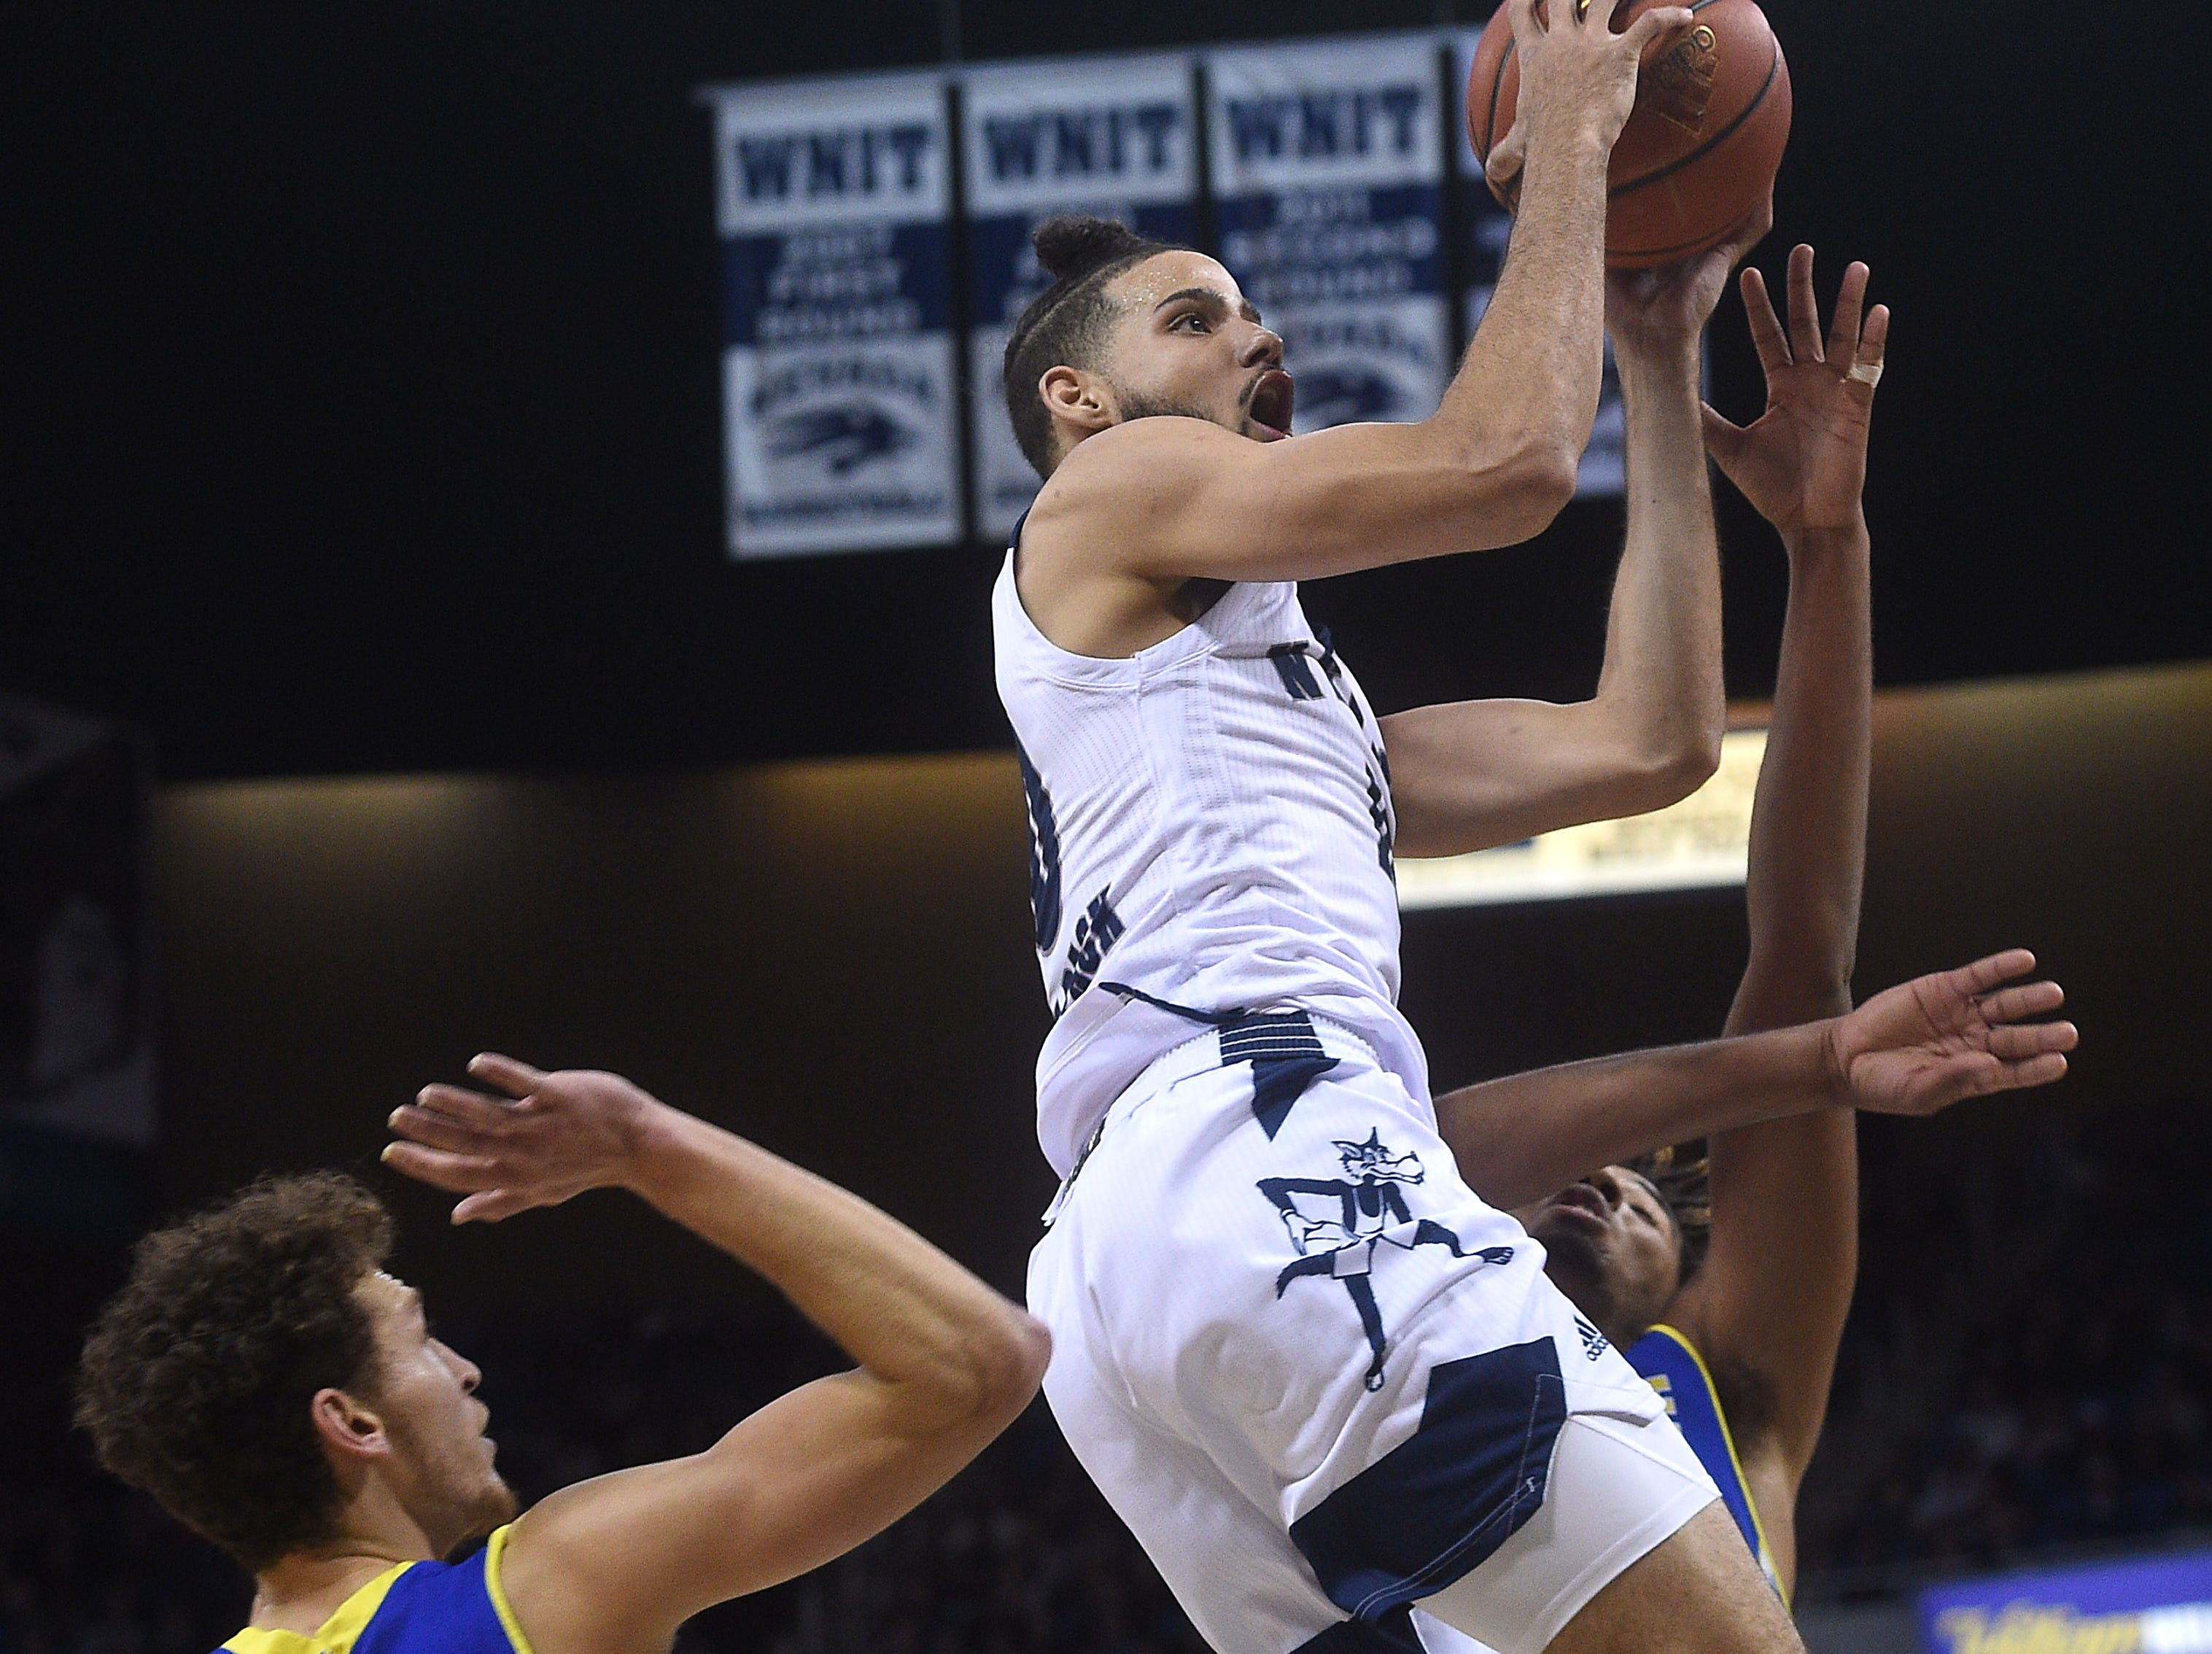 Nevada's Caleb Martin drives to the basket while taking on San Jose State during their basketball game at Lawlor Events Center in Reno on Jan. 9, 2019.